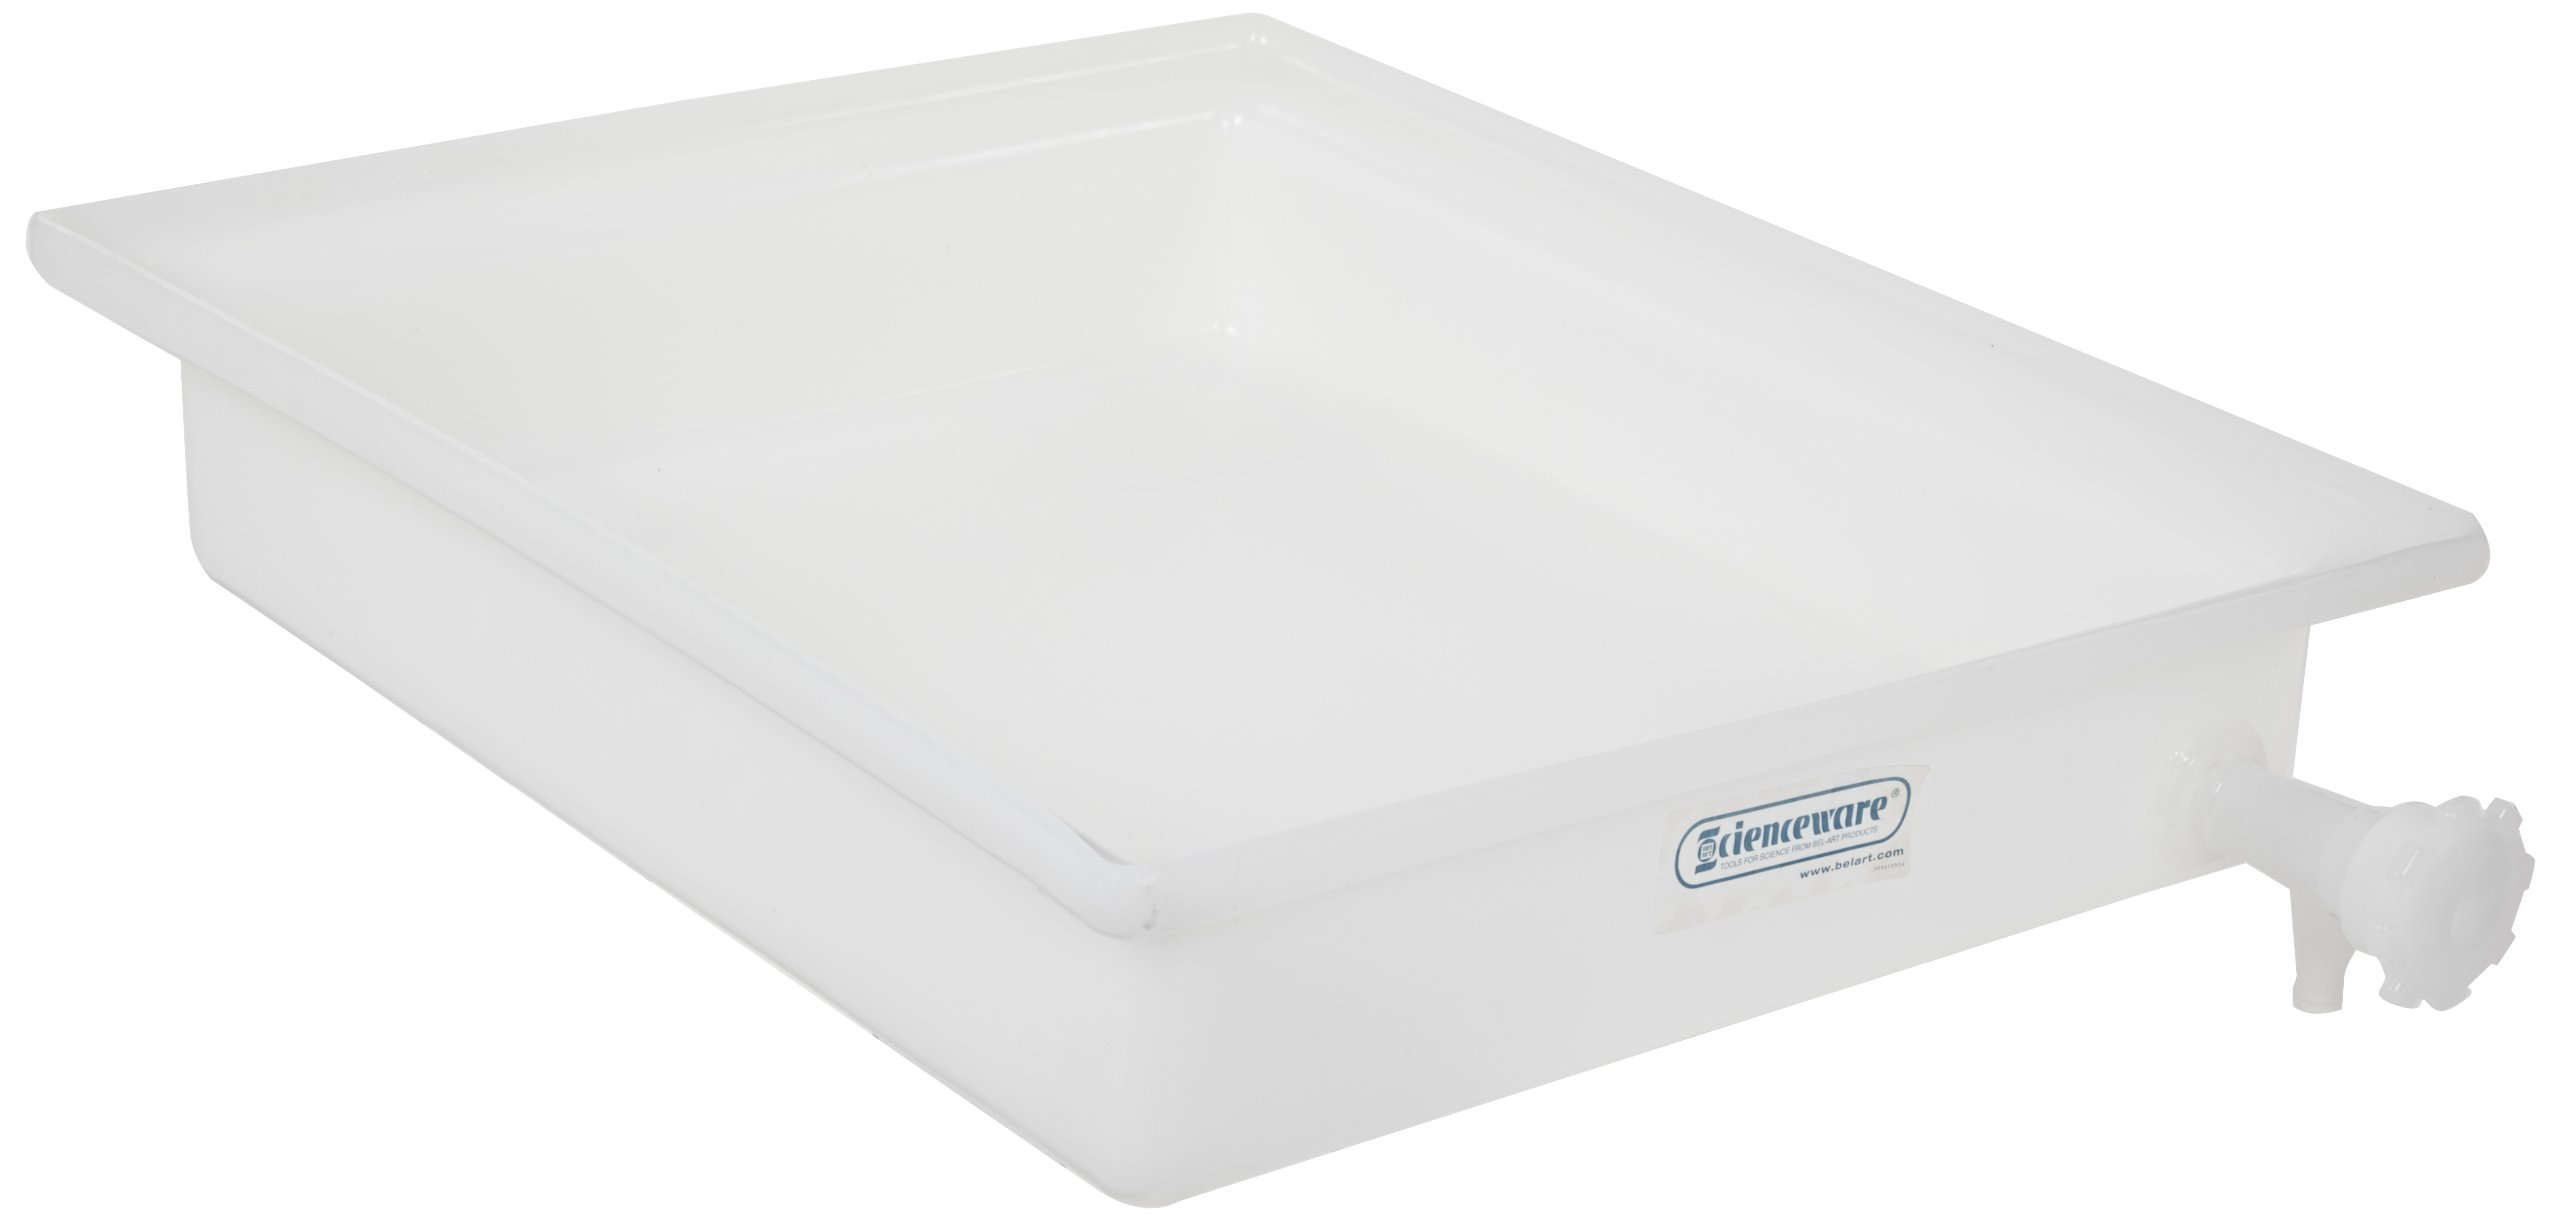 Bel-Art General Purpose Polyethylene Tray with Faucet; 21½ x 25½ x 4 in. (F16293-0000) by SP Scienceware